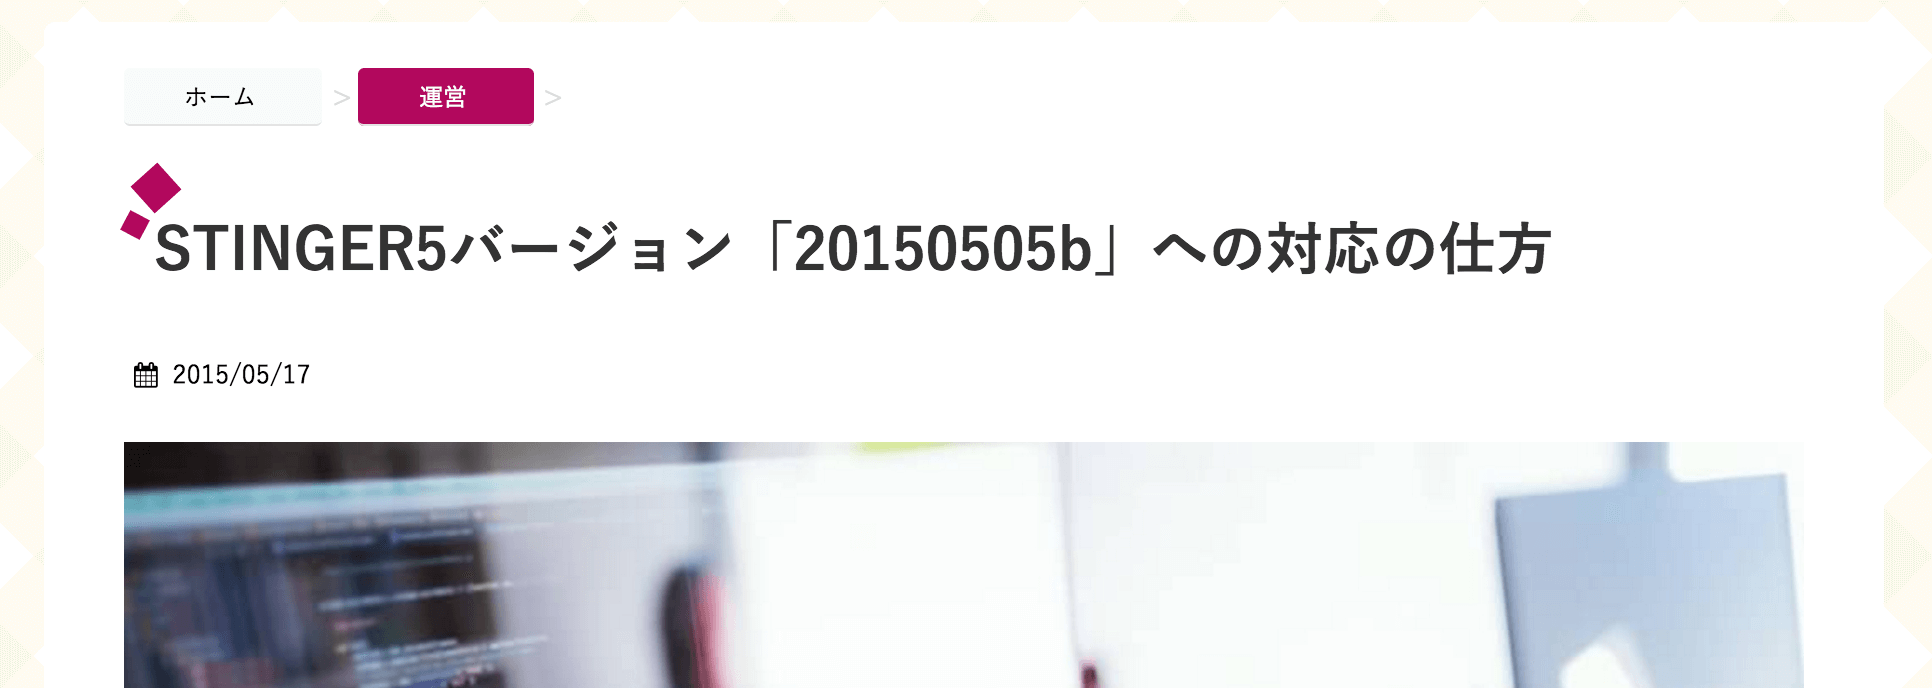 8_20151220_simplester-ver6